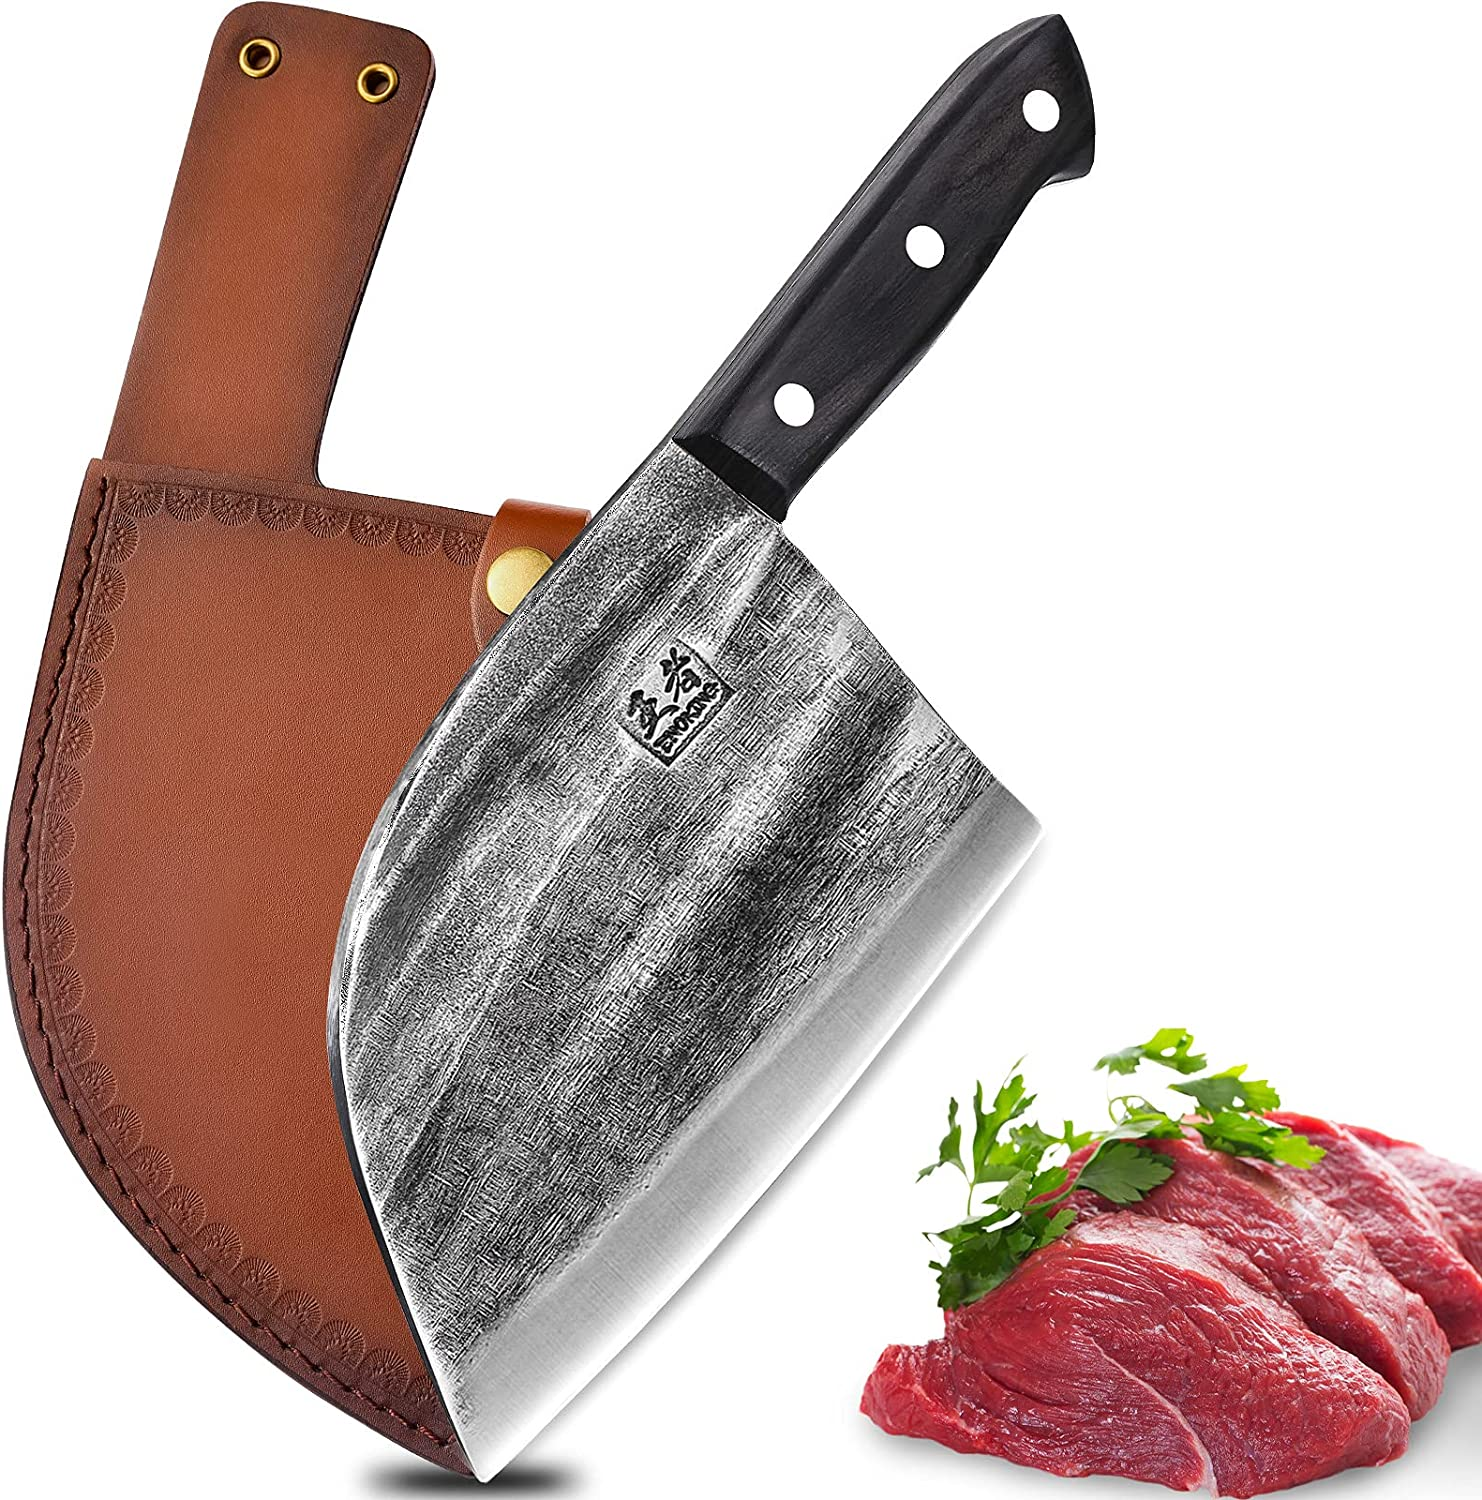 Enoking Hand Forged Serbian Chef Knife  $17.99 Coupon